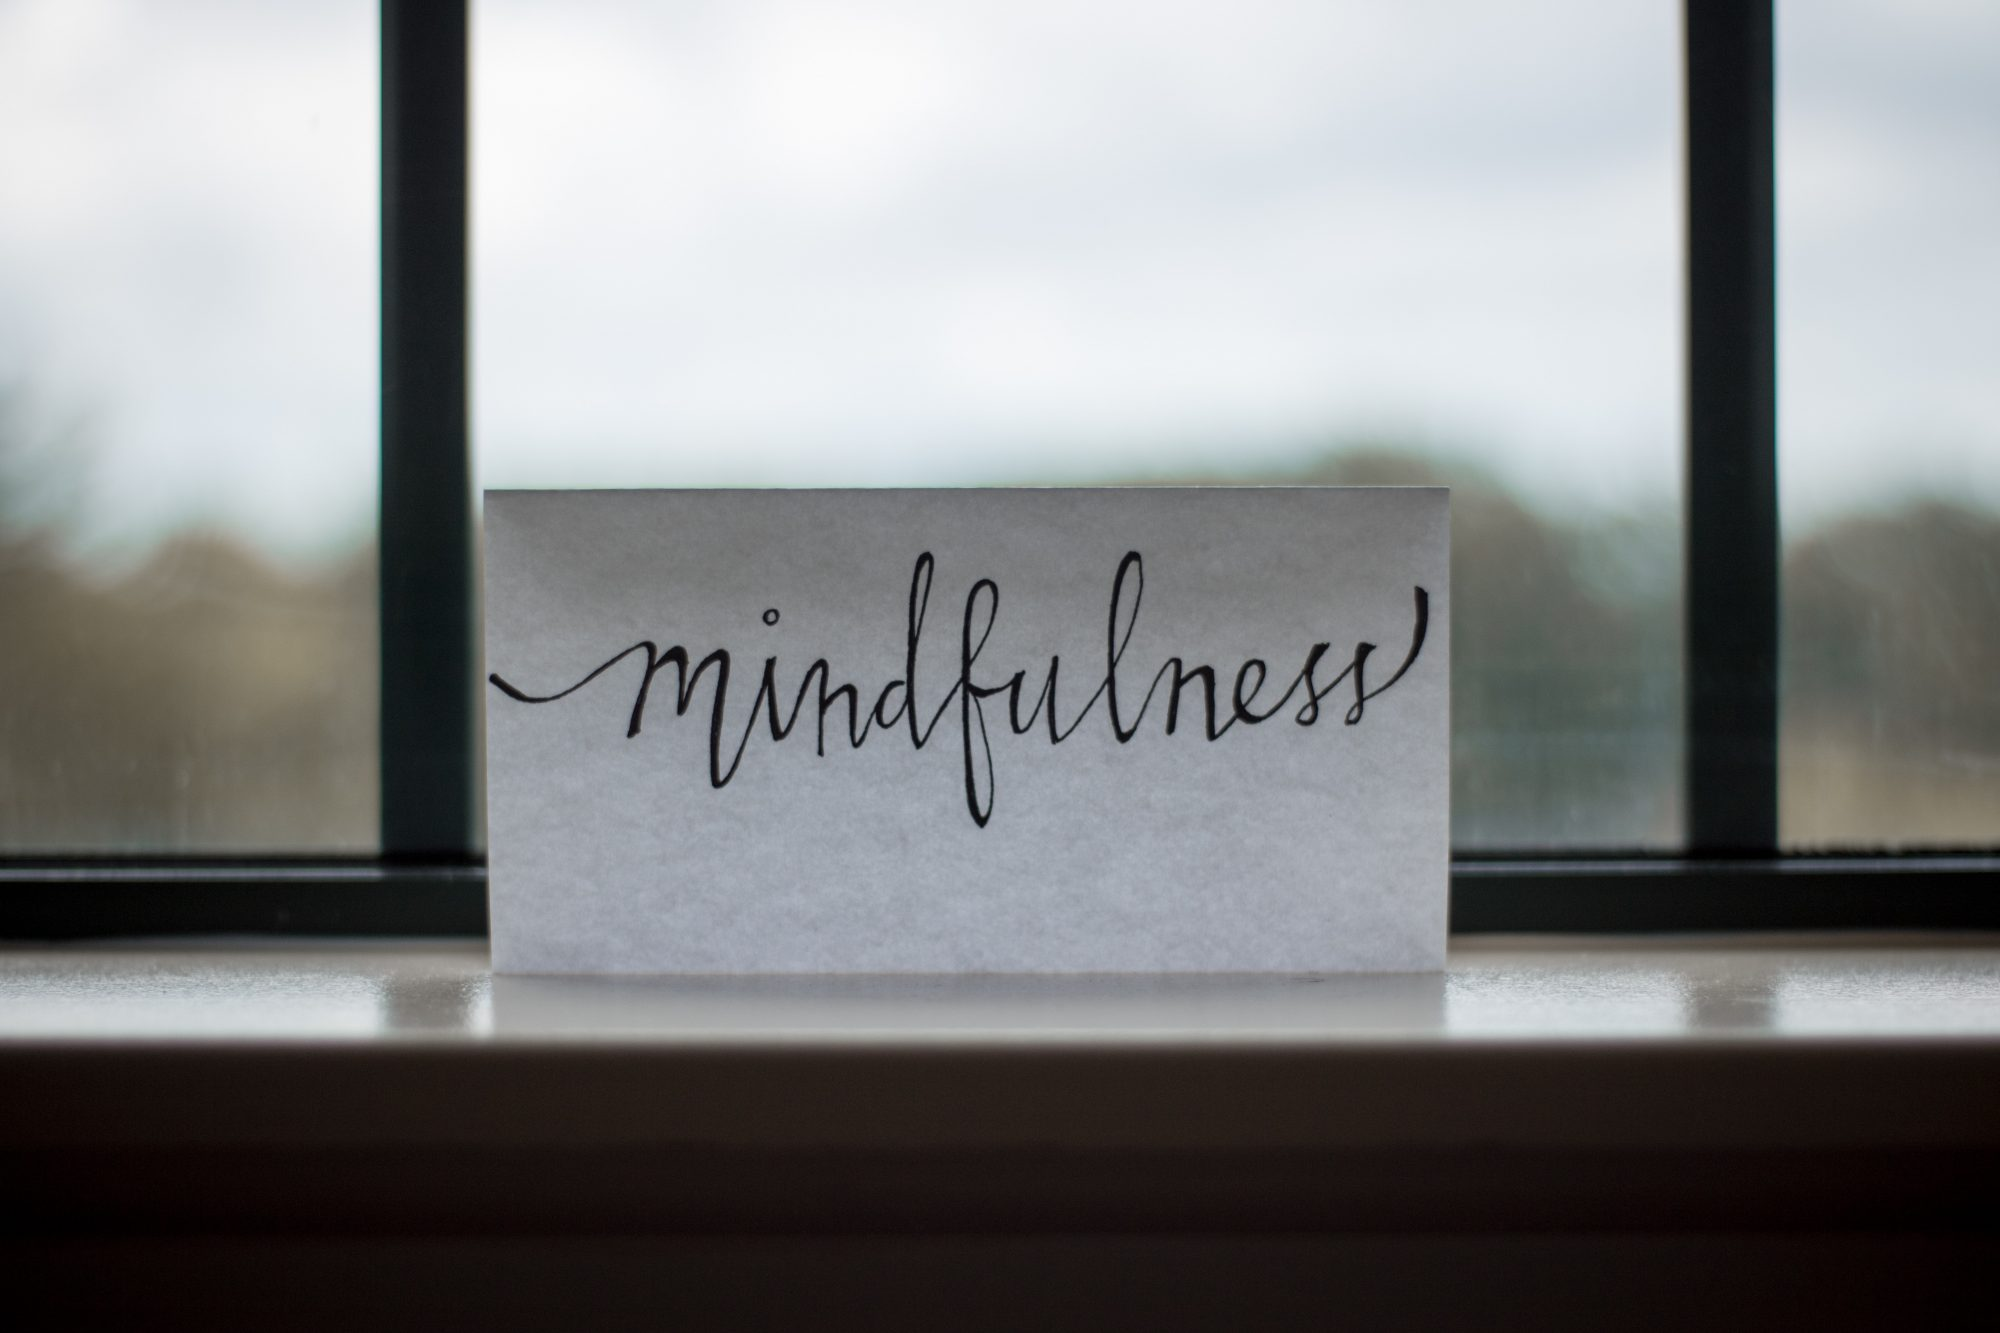 Millennial Simplicity and Mindfulness Round Up #1